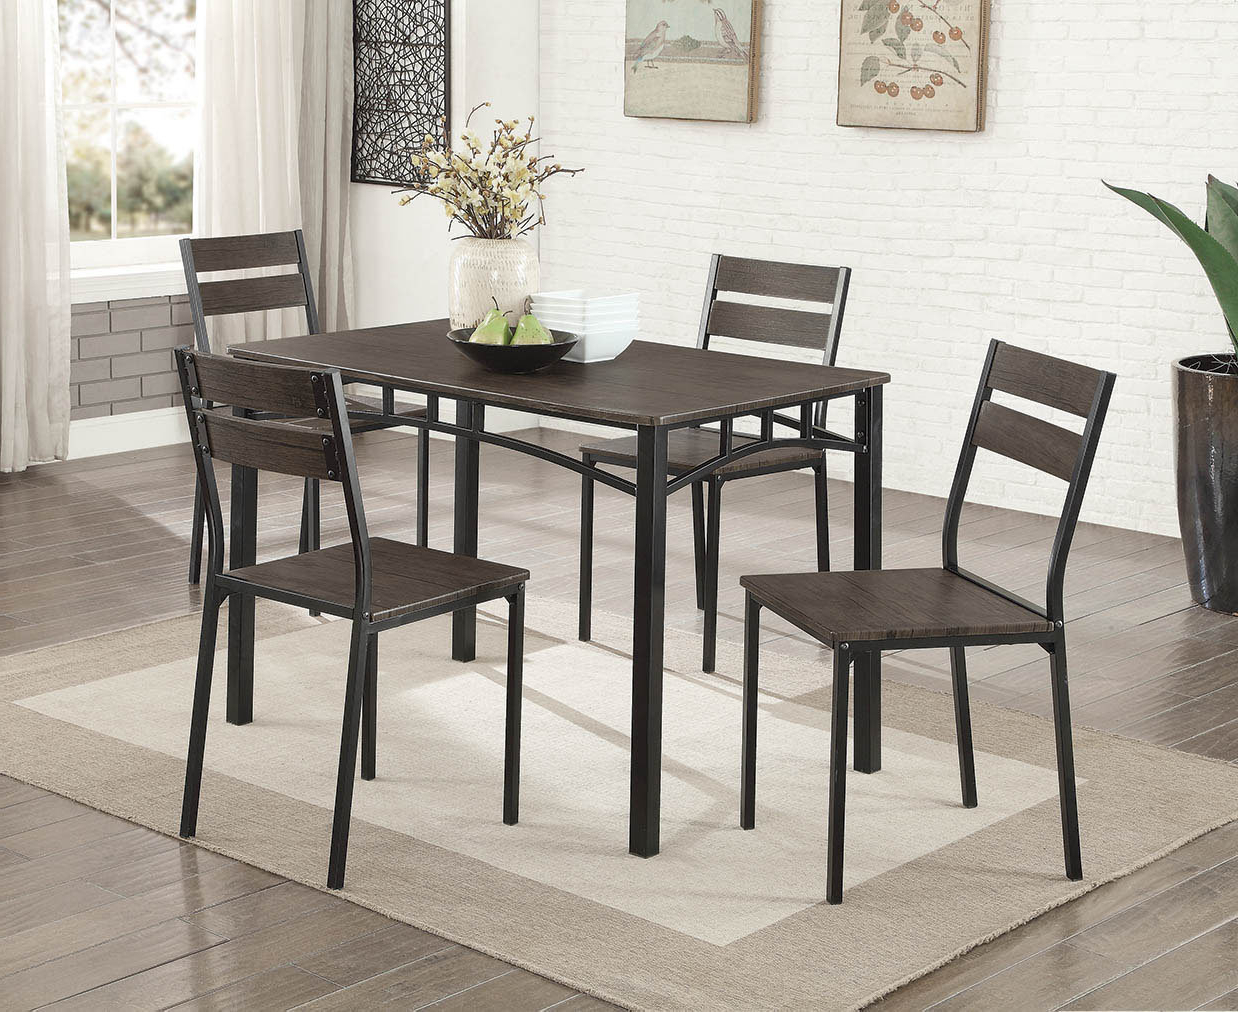 Autberry 5 Piece Dining Set In Recent Maynard 5 Piece Dining Sets (View 2 of 20)